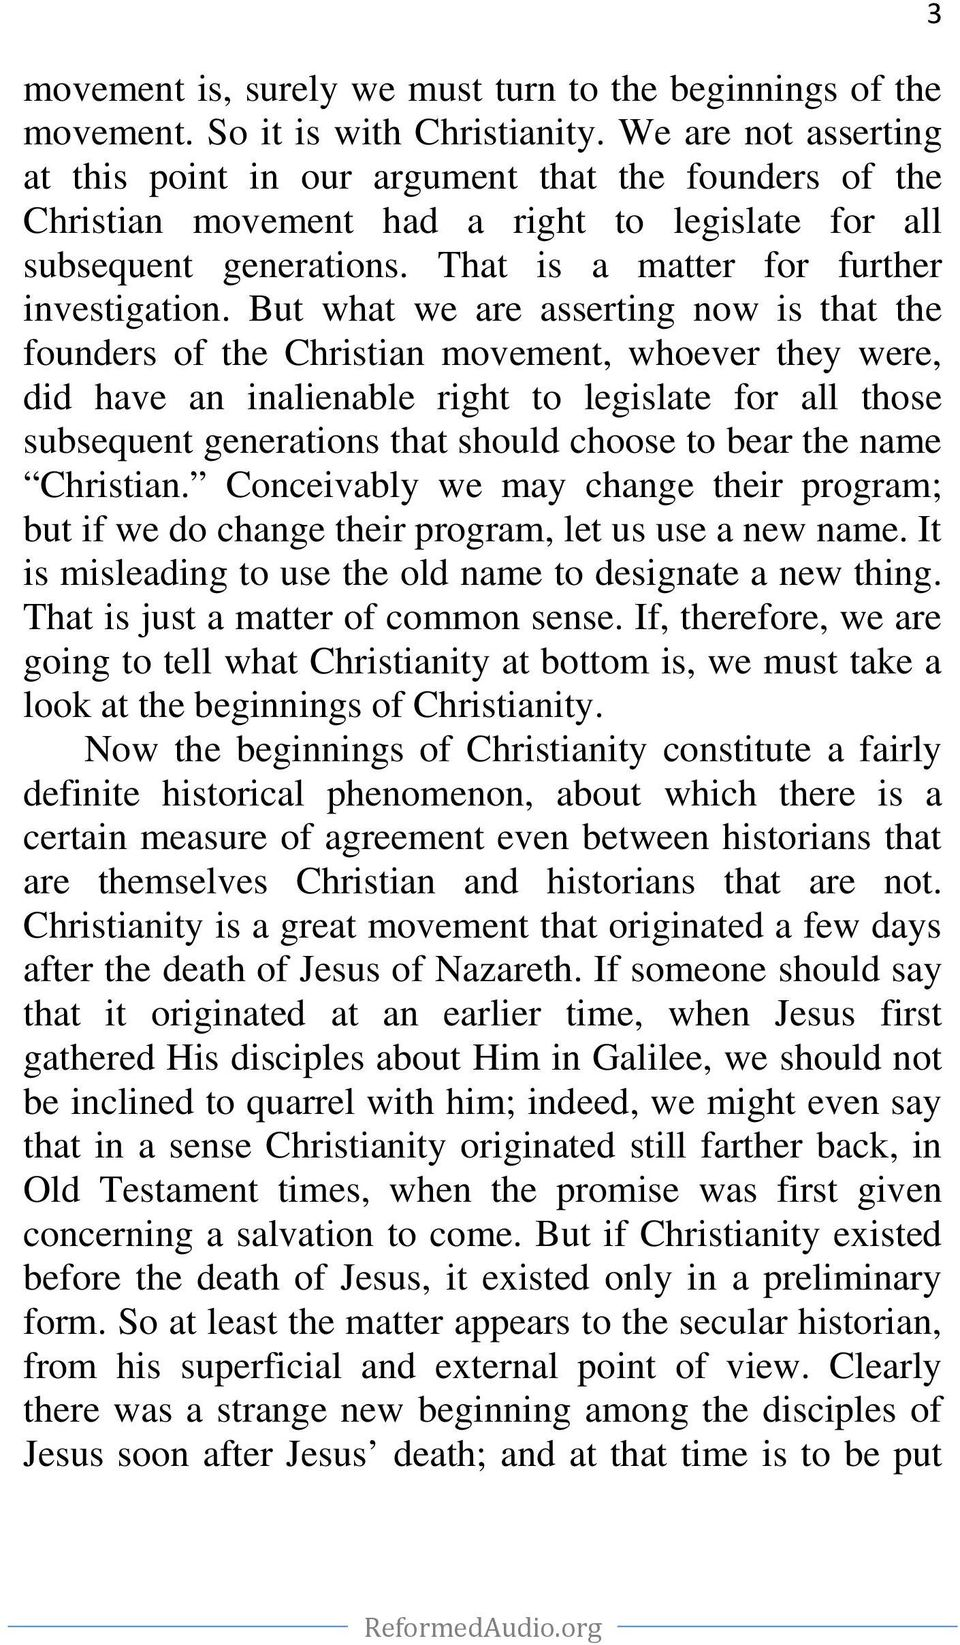 But what we are asserting now is that the founders of the Christian movement, whoever they were, did have an inalienable right to legislate for all those subsequent generations that should choose to